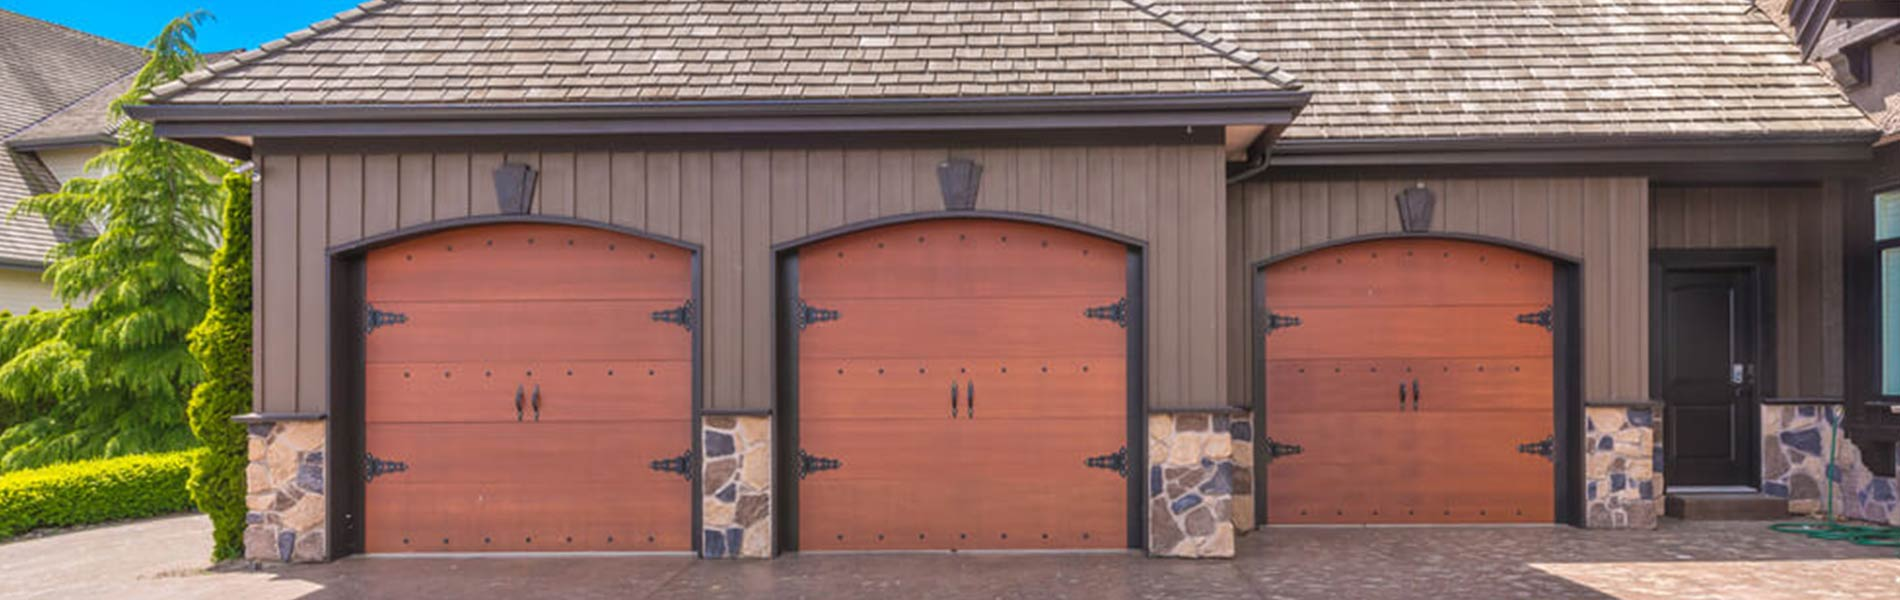 Golden Garage Door Service, West Palm Beach, FL 561-510-2090